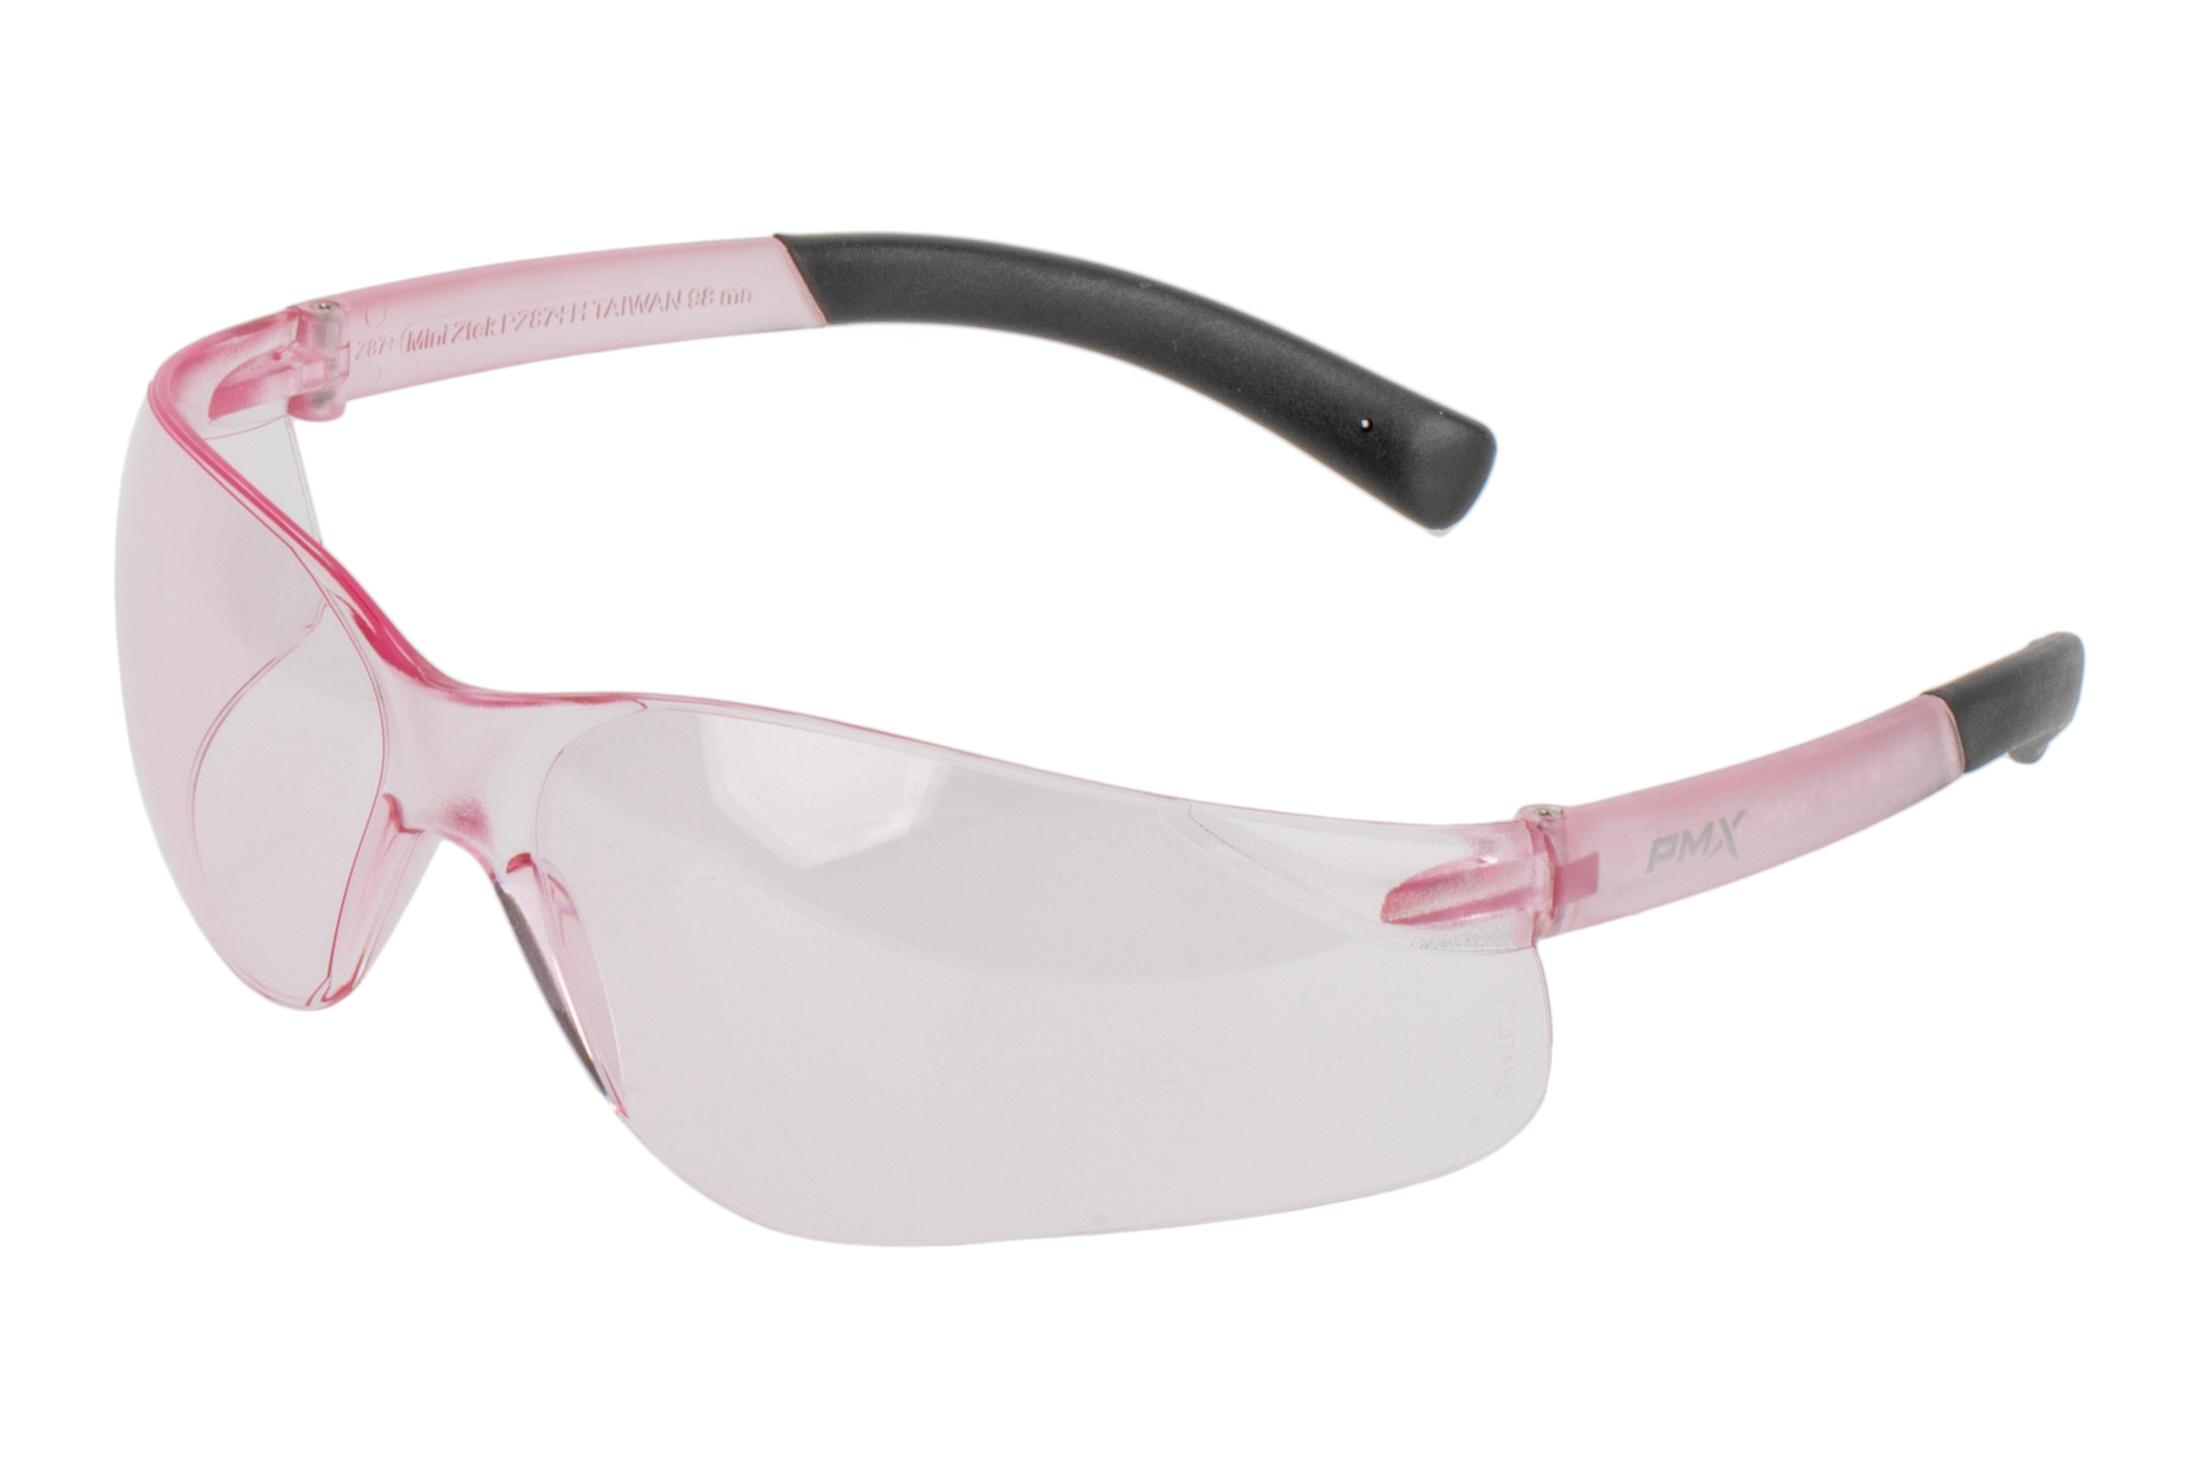 Pyramex Mini ZTEK eye protection with pink lenses, pink frames block 100% of UV and include DP1000 ear plugs.